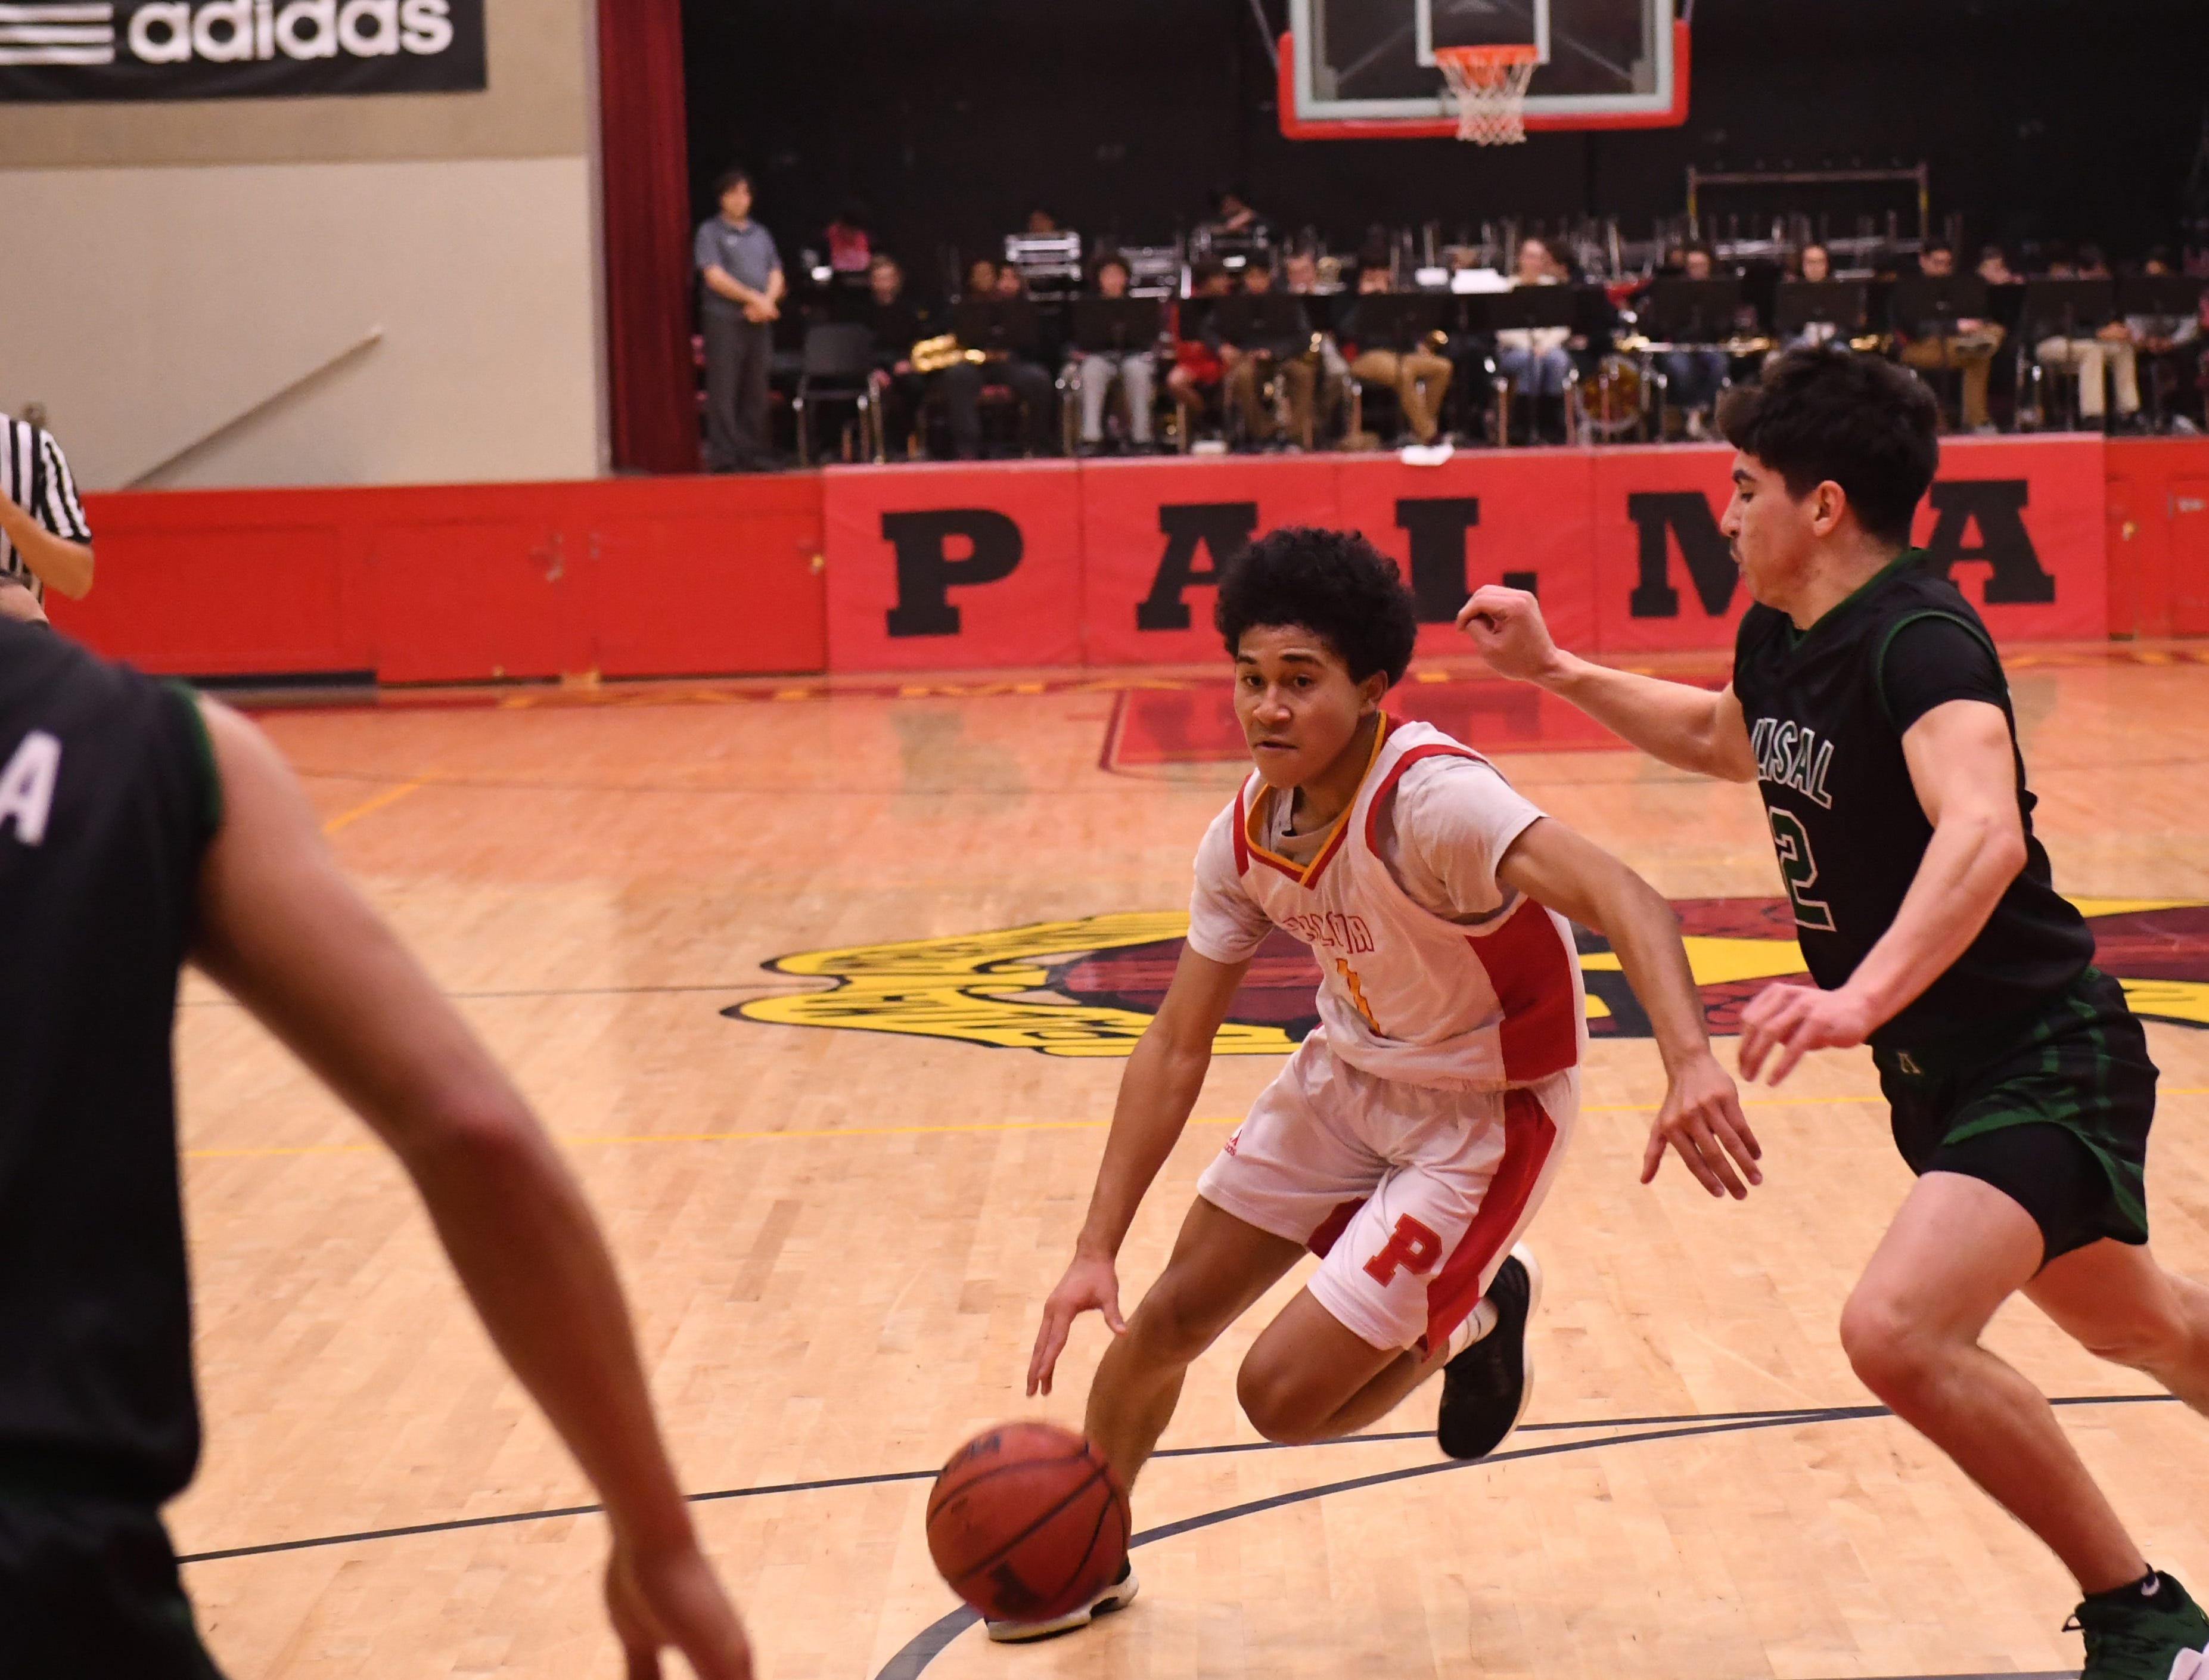 Palma guard Nate Jean Pierre (1) drives through the paint in the second quarter.